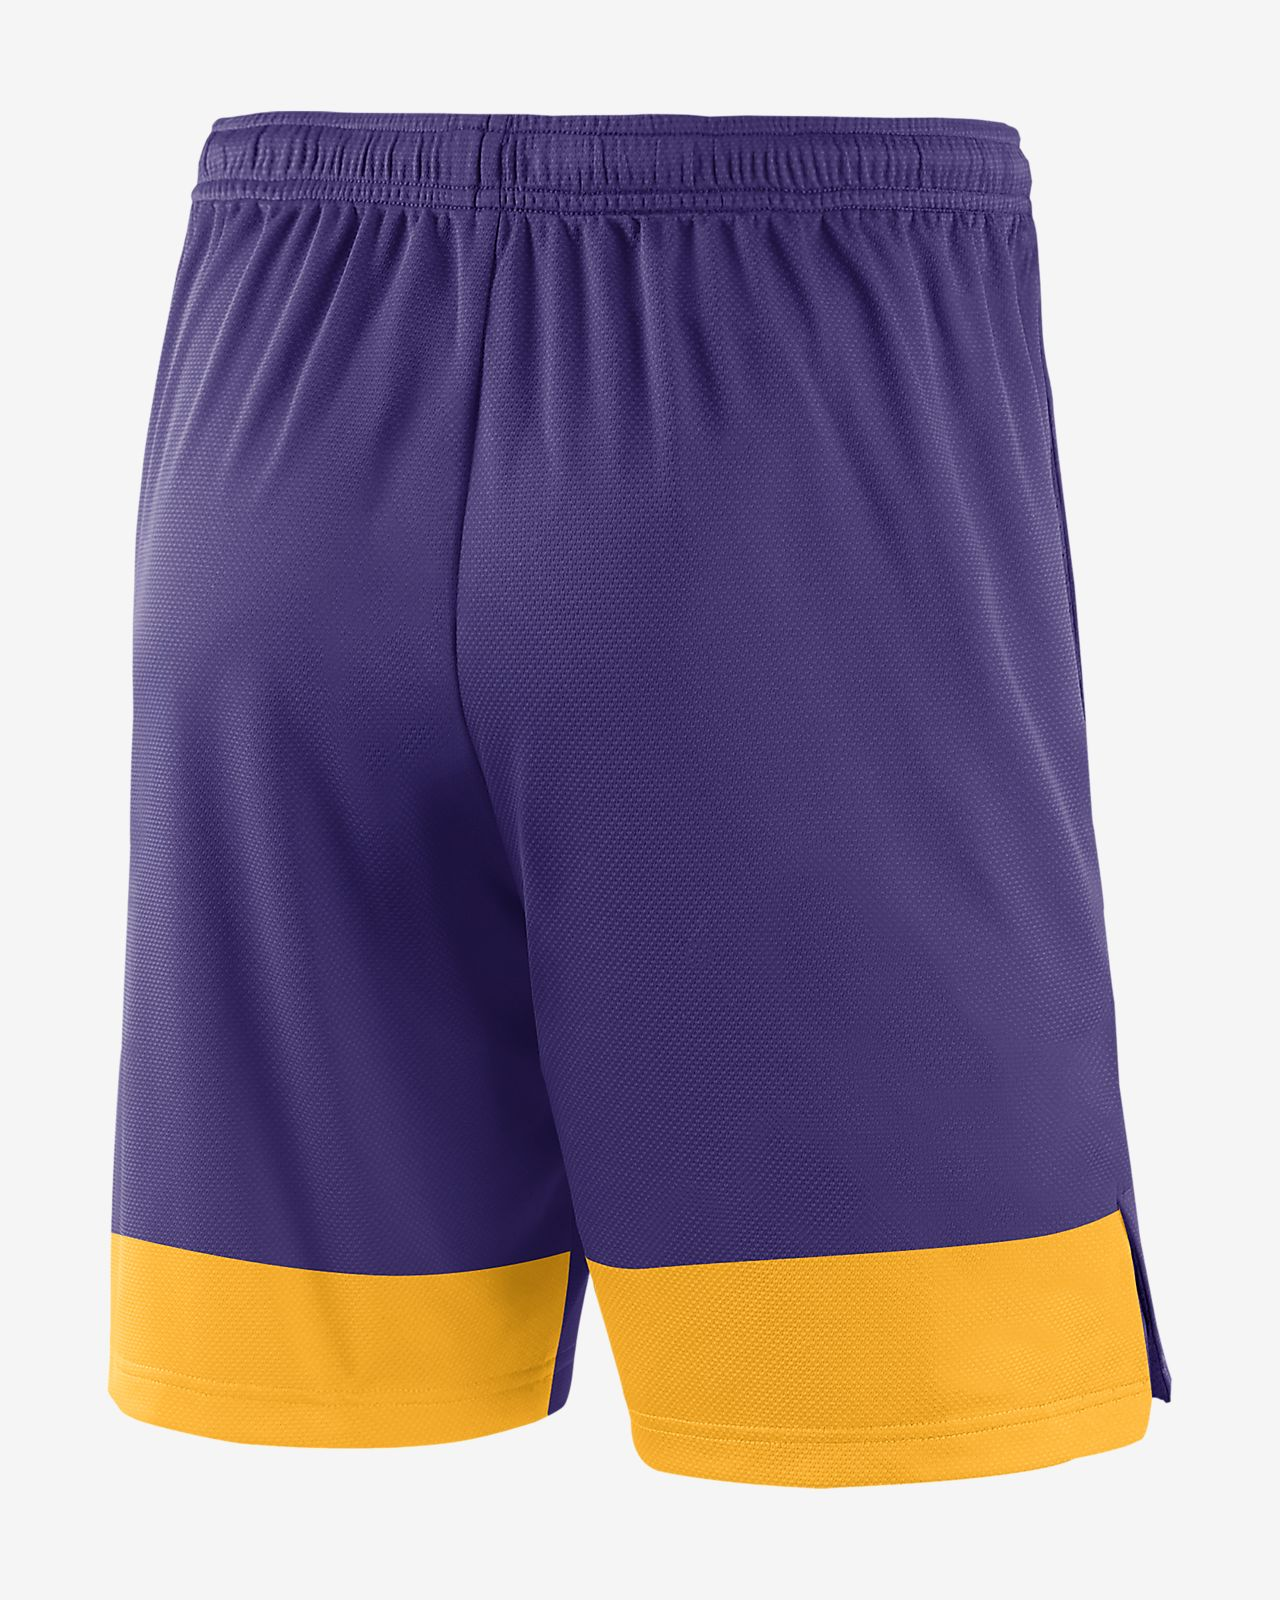 6aa1b34b33 Nike College Breathe Player (LSU) Men's Shorts. Nike.com